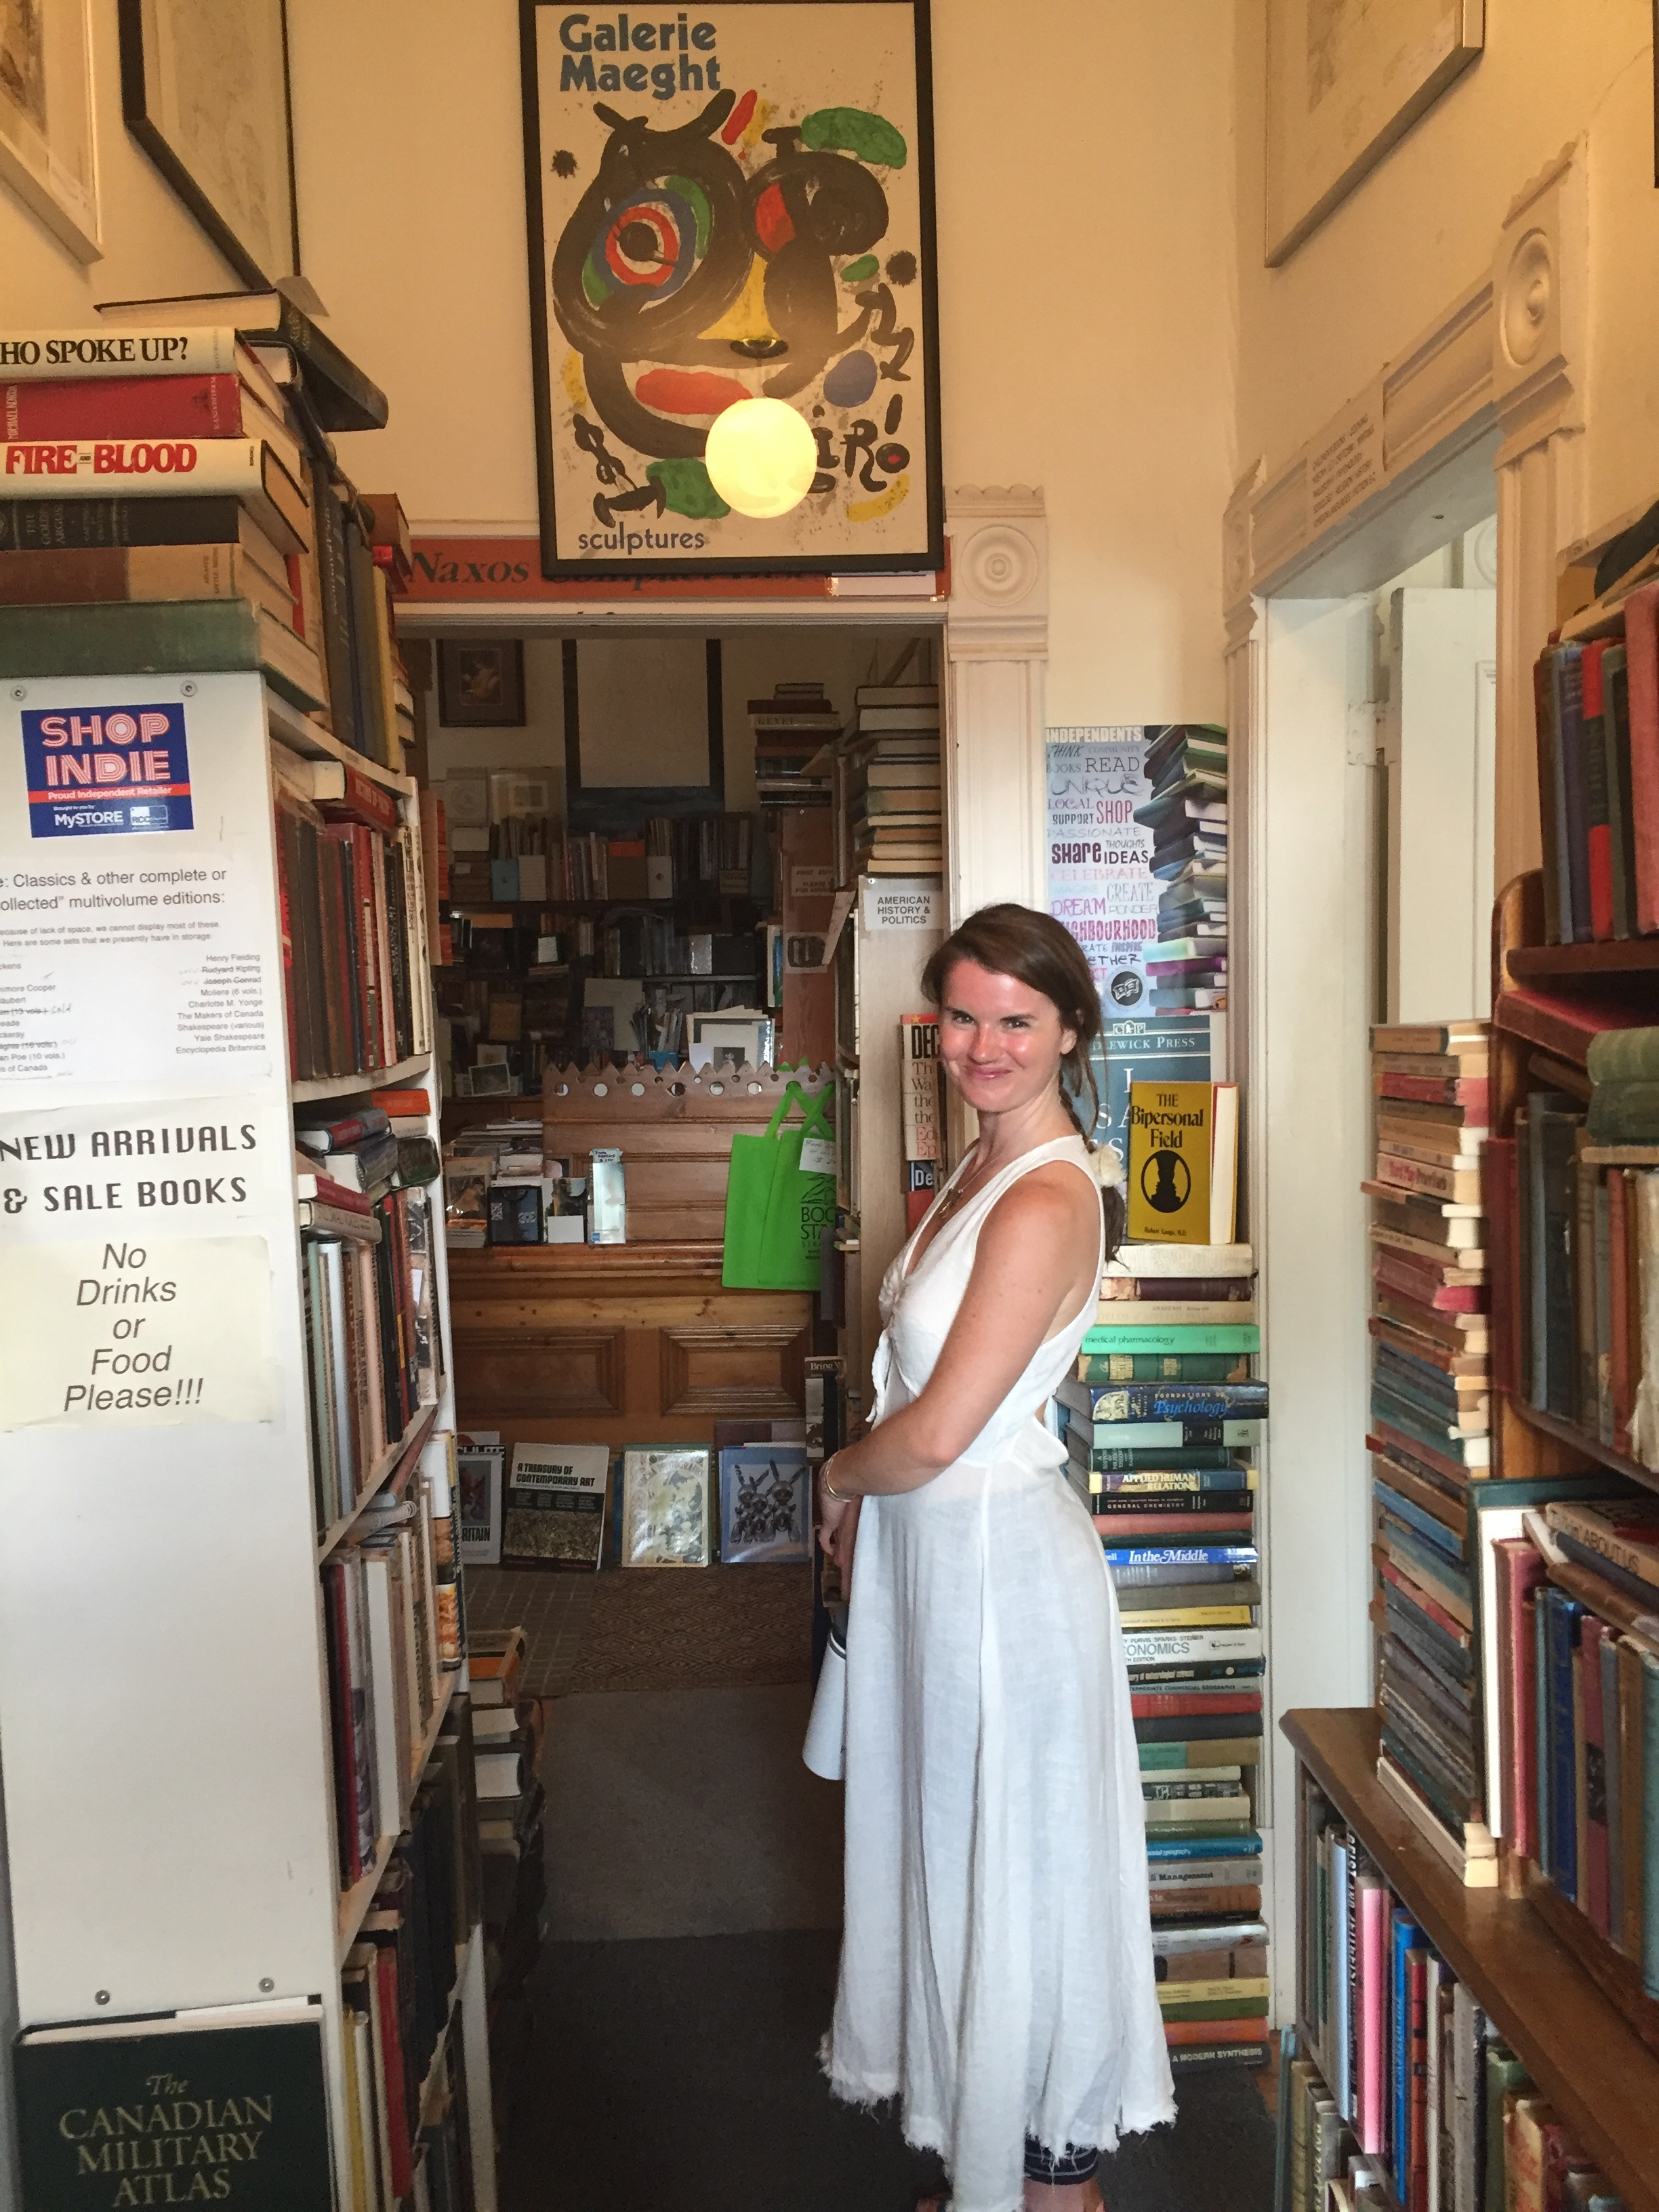 [image description: A photo of my friend Julia amidst the bookshelves at Book Stage. She's a white woman with long dark hair wearing a long white dress. She's a goddess in human form.]